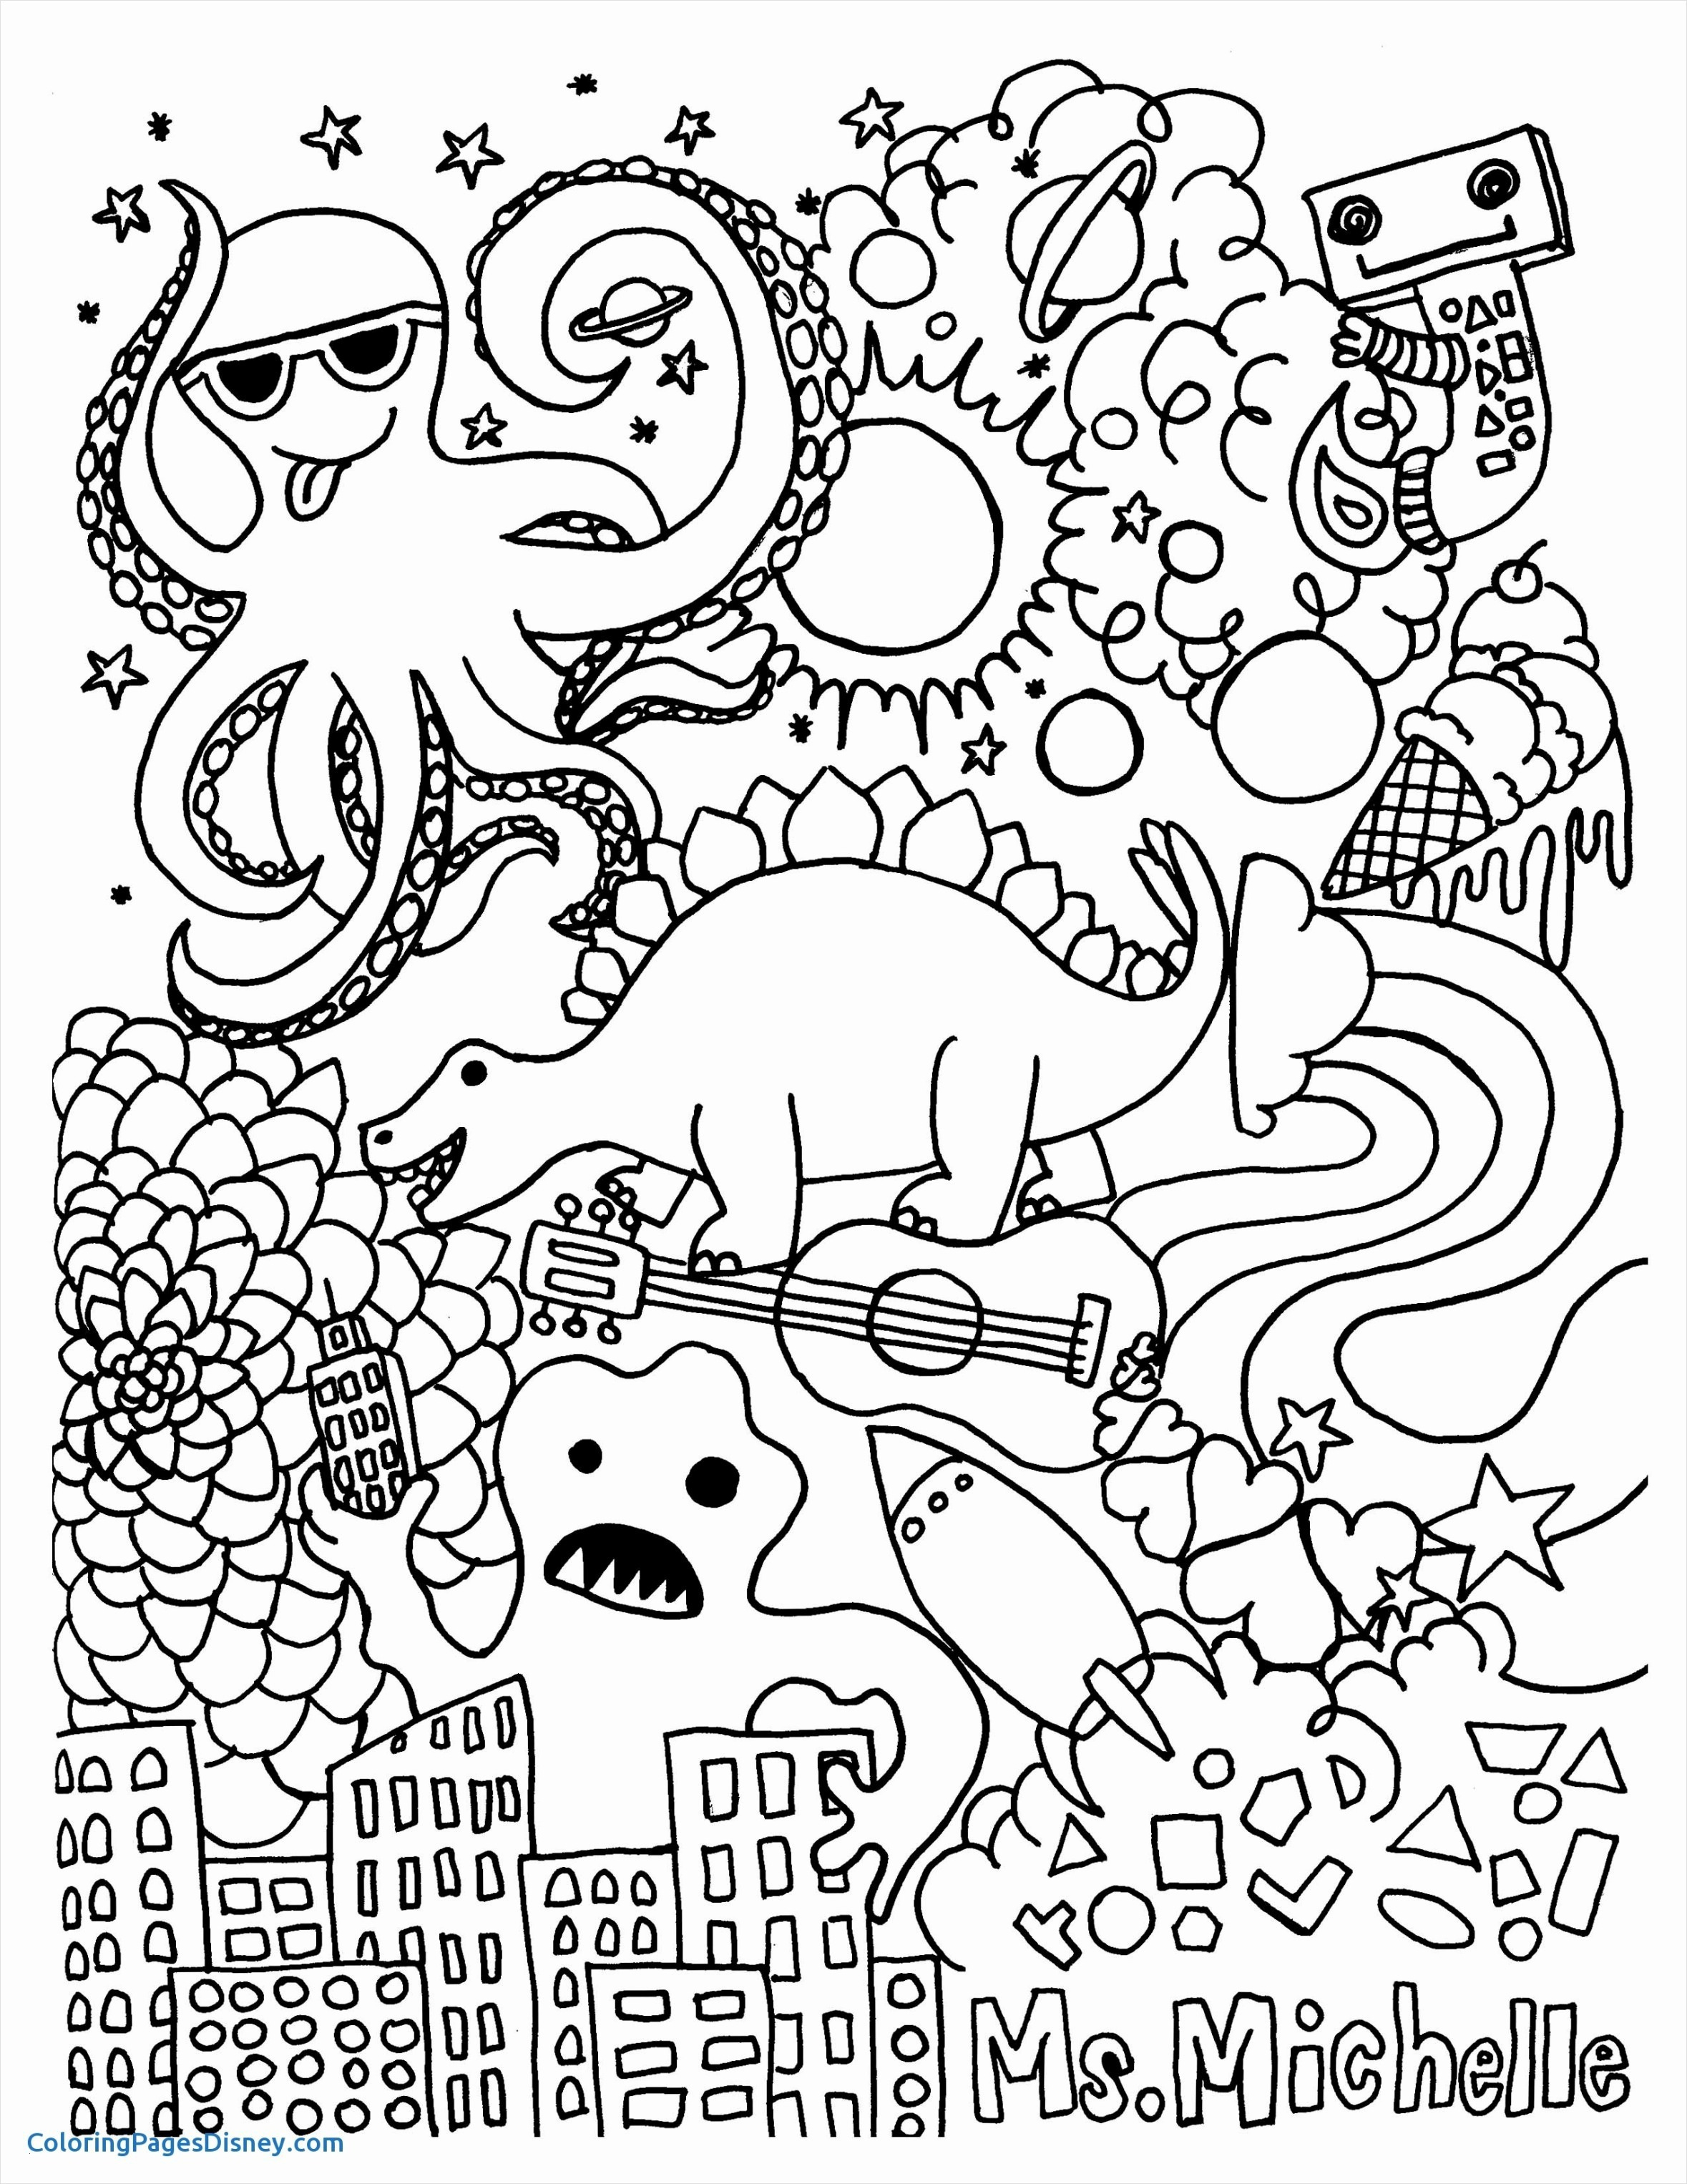 haida art coloring pages Download-Totem Pole Coloring Page 30 Inspirational Native American Coloring Page Cloud9vegas 16-r